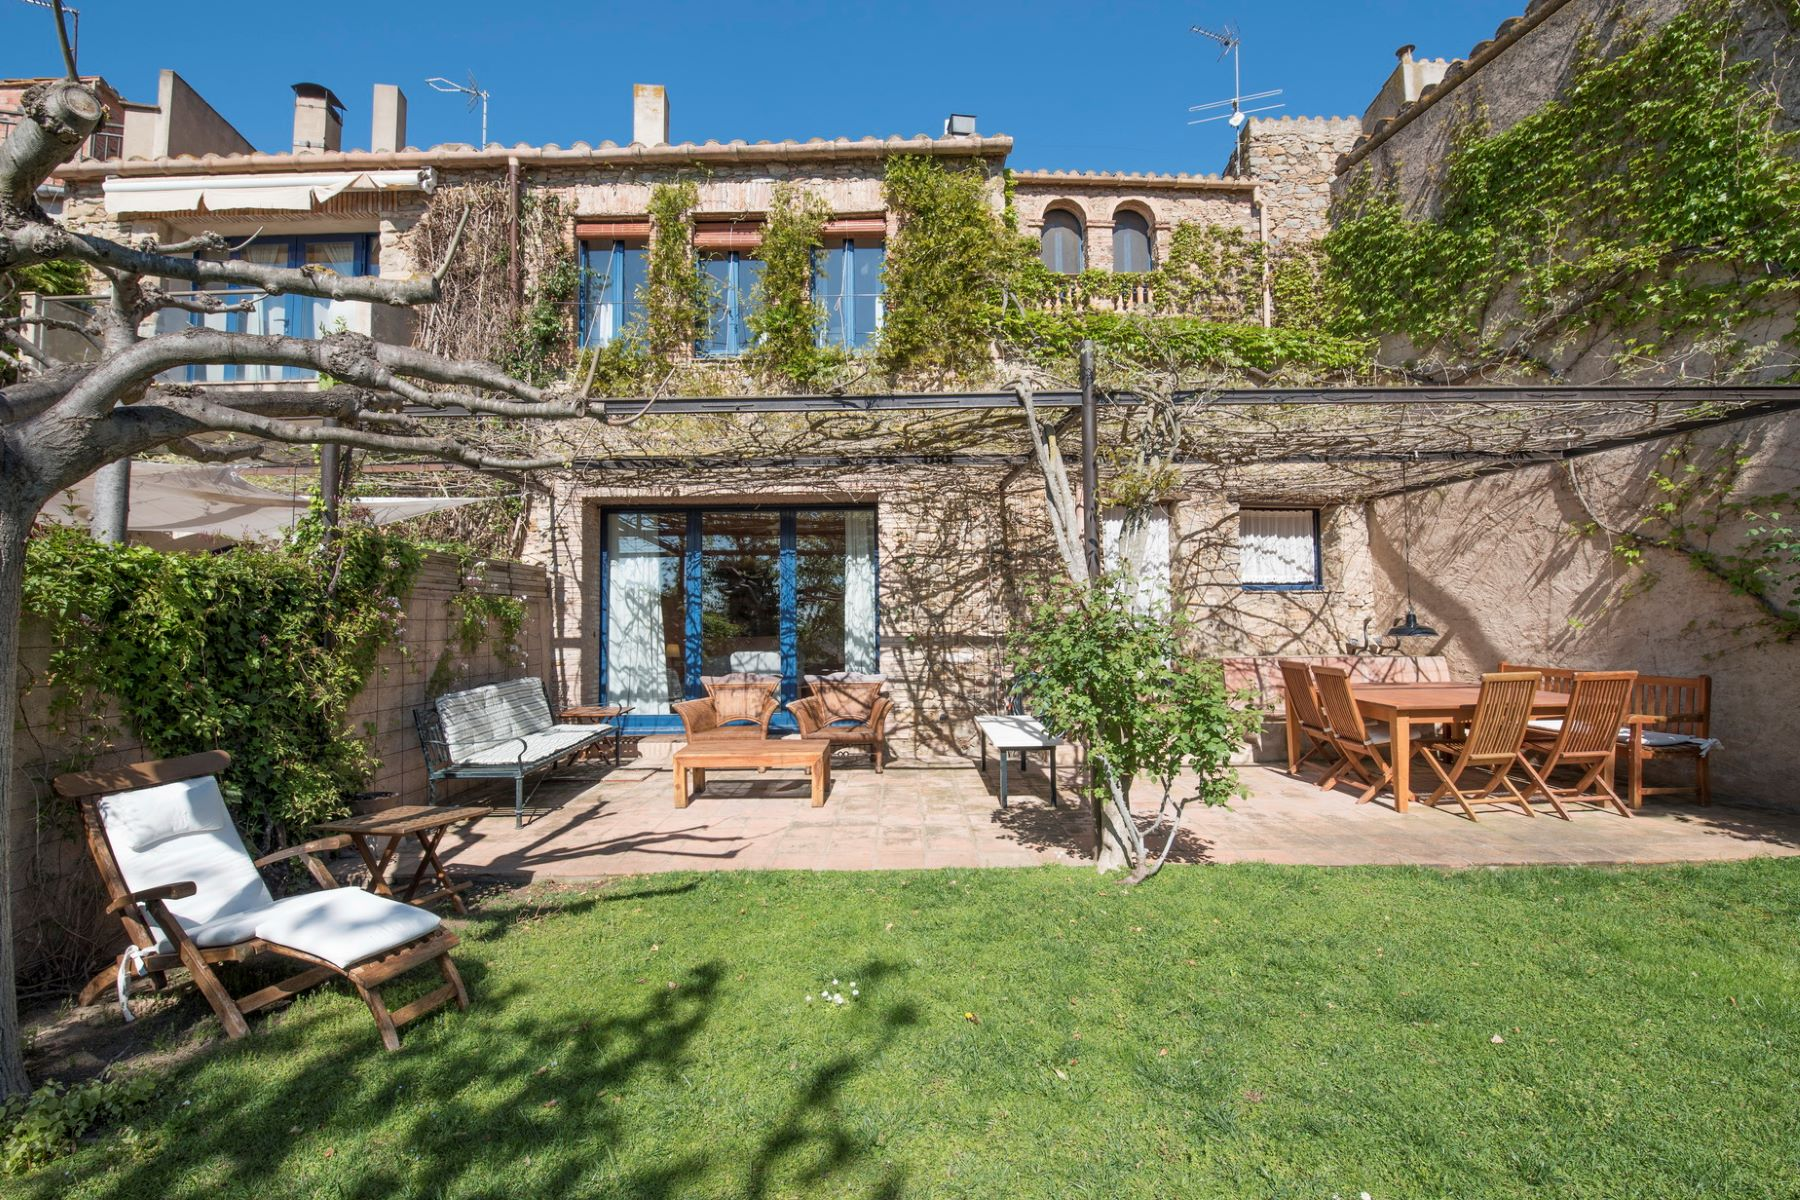 Nhà ở một gia đình vì Bán tại Town house with garden and views in the centre of Ullastret Other Cities Baix Emporda, Barcelona, 17001 Tây Ban Nha